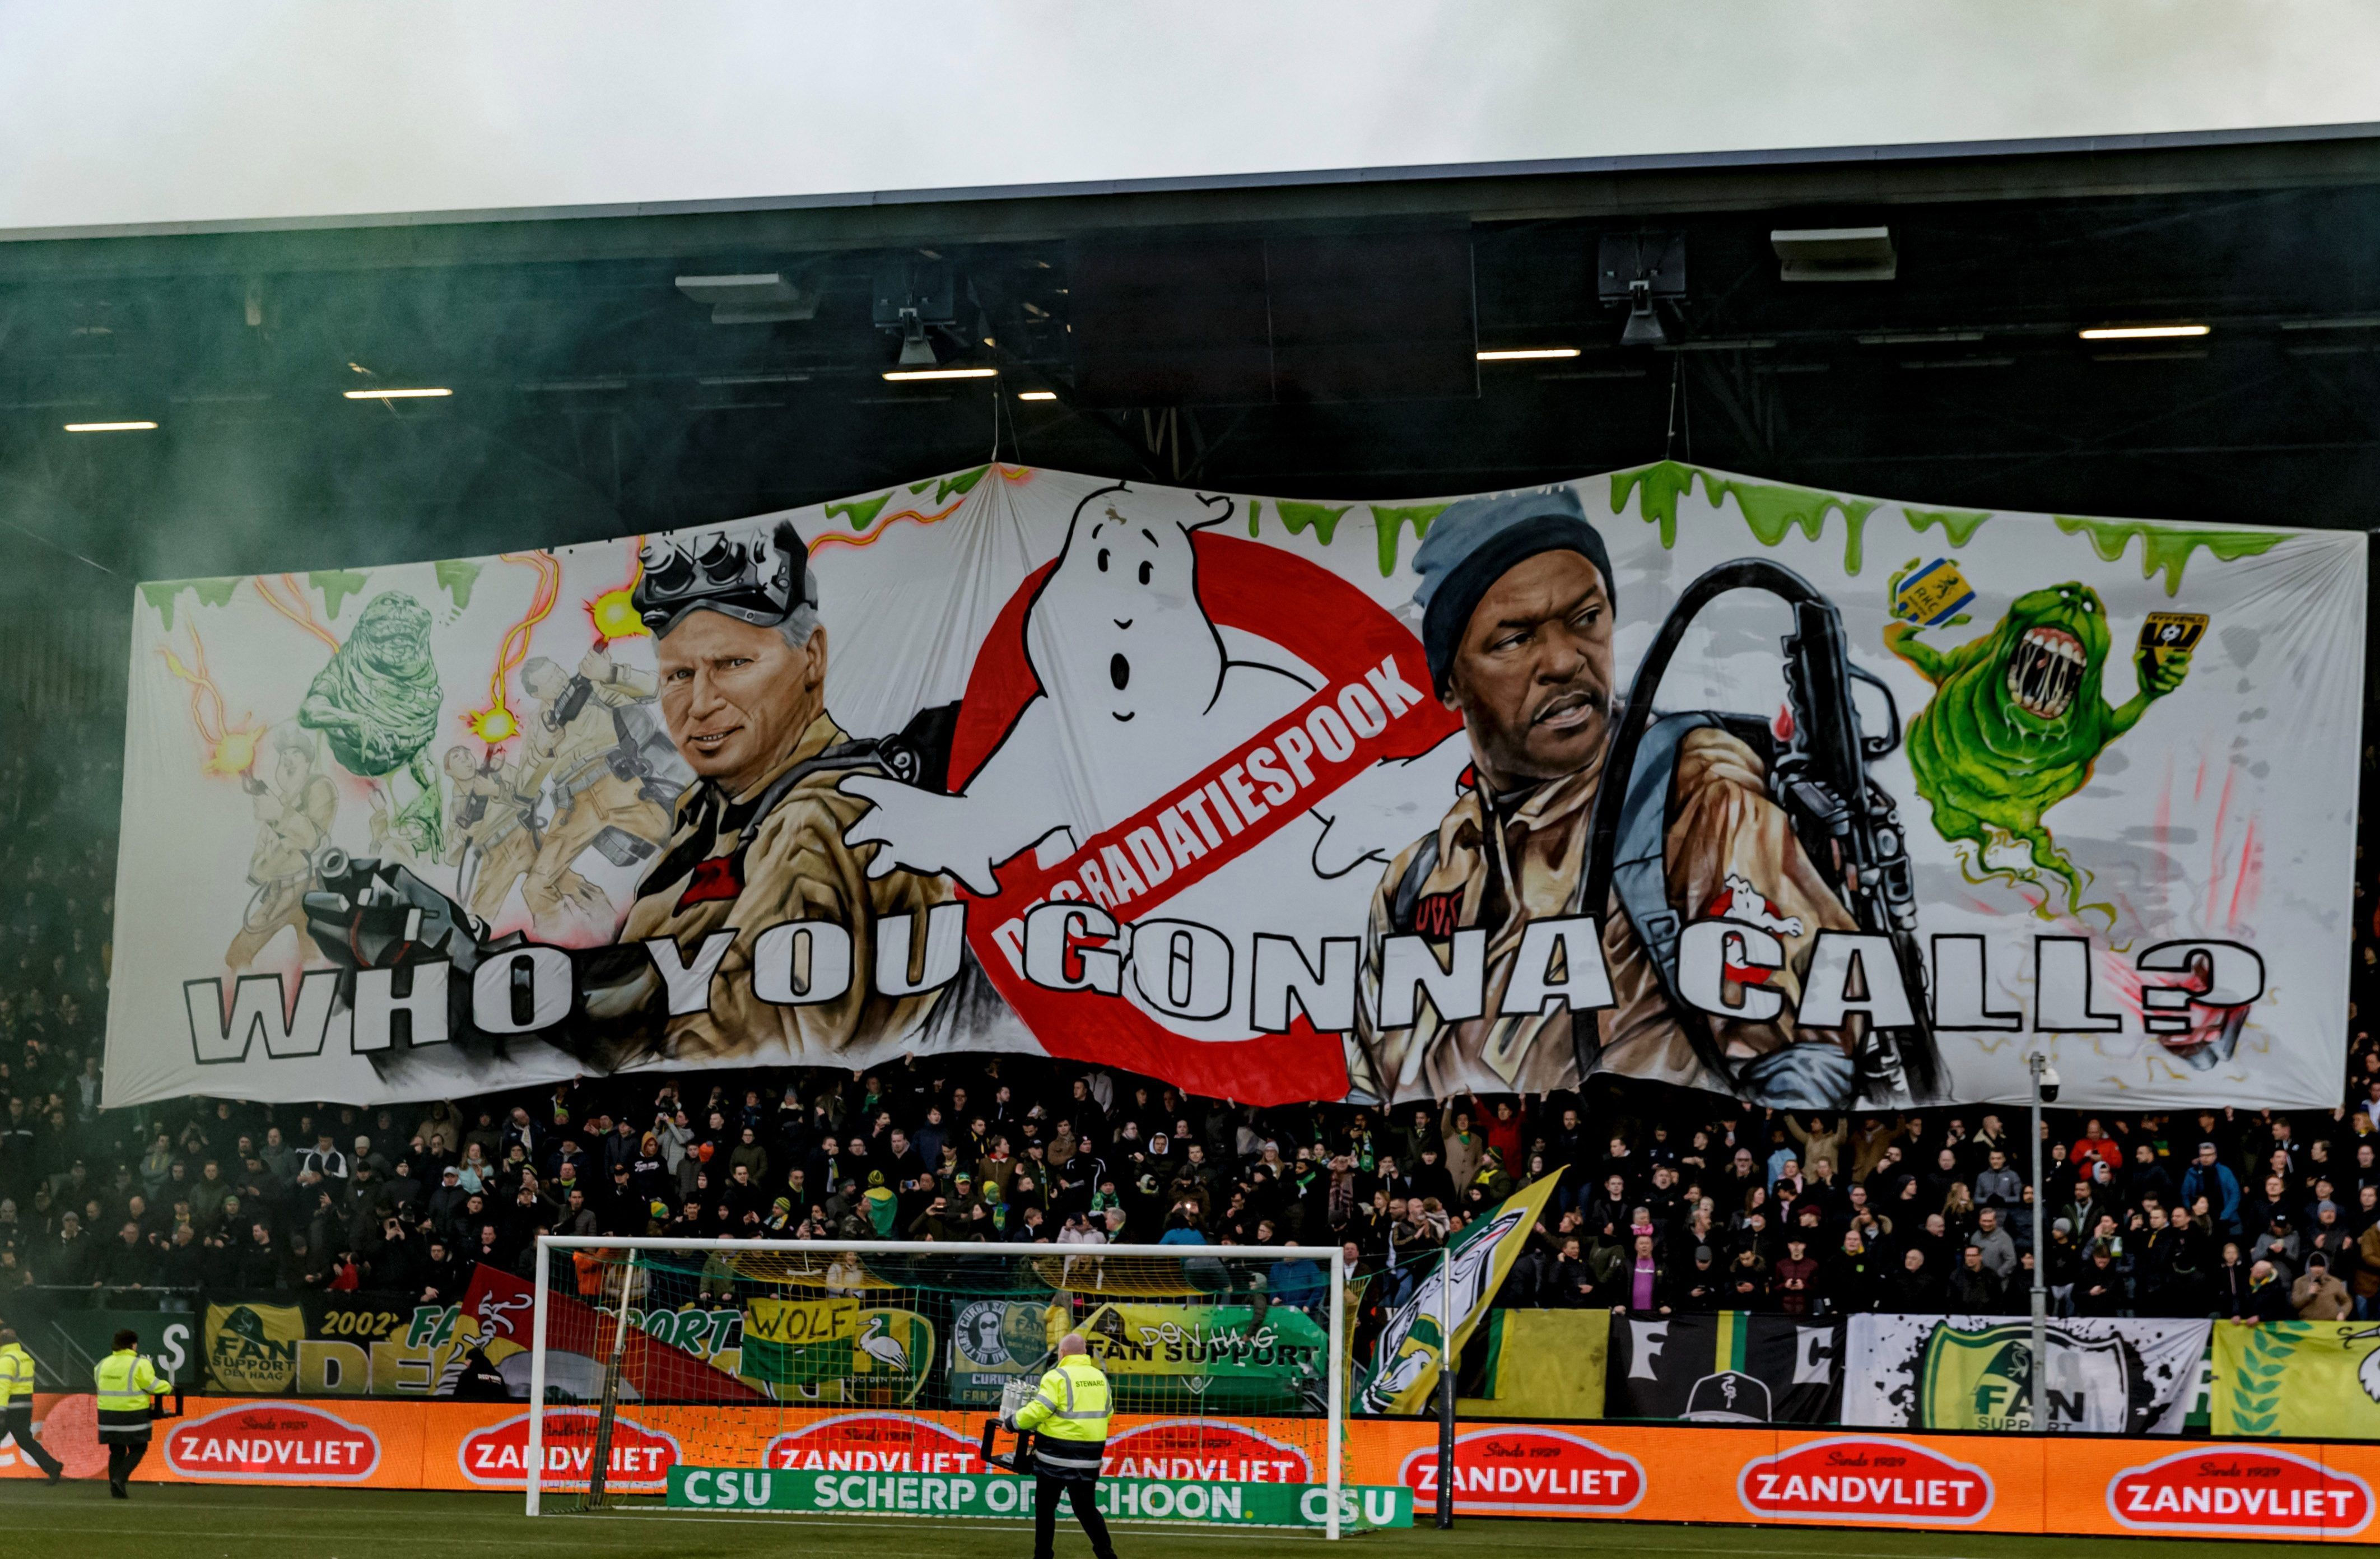 Ado Den Haag Fans Invade Alan Pardews Training Session To Protest Against Ex West Brom Boss Tactics As Poor Eredivisie Form Alan Pardew West Brom Ghostbusters